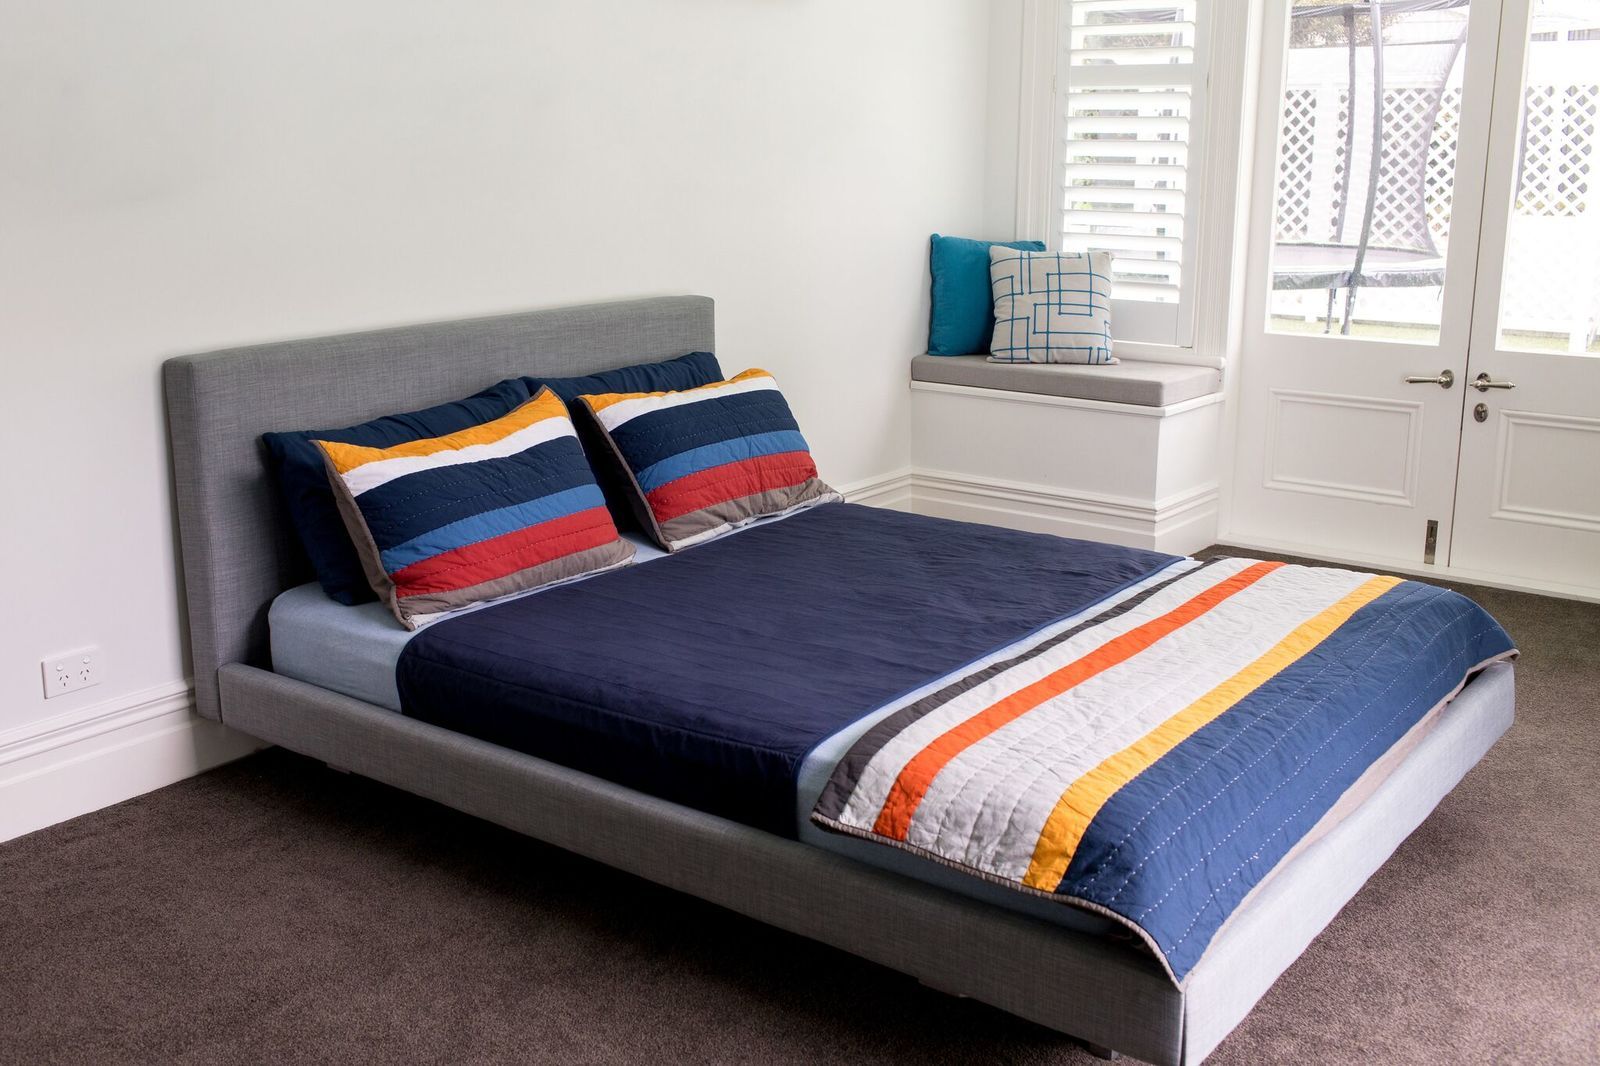 Brolly Sheets: Queen Sheet Bed Pad - Navy image